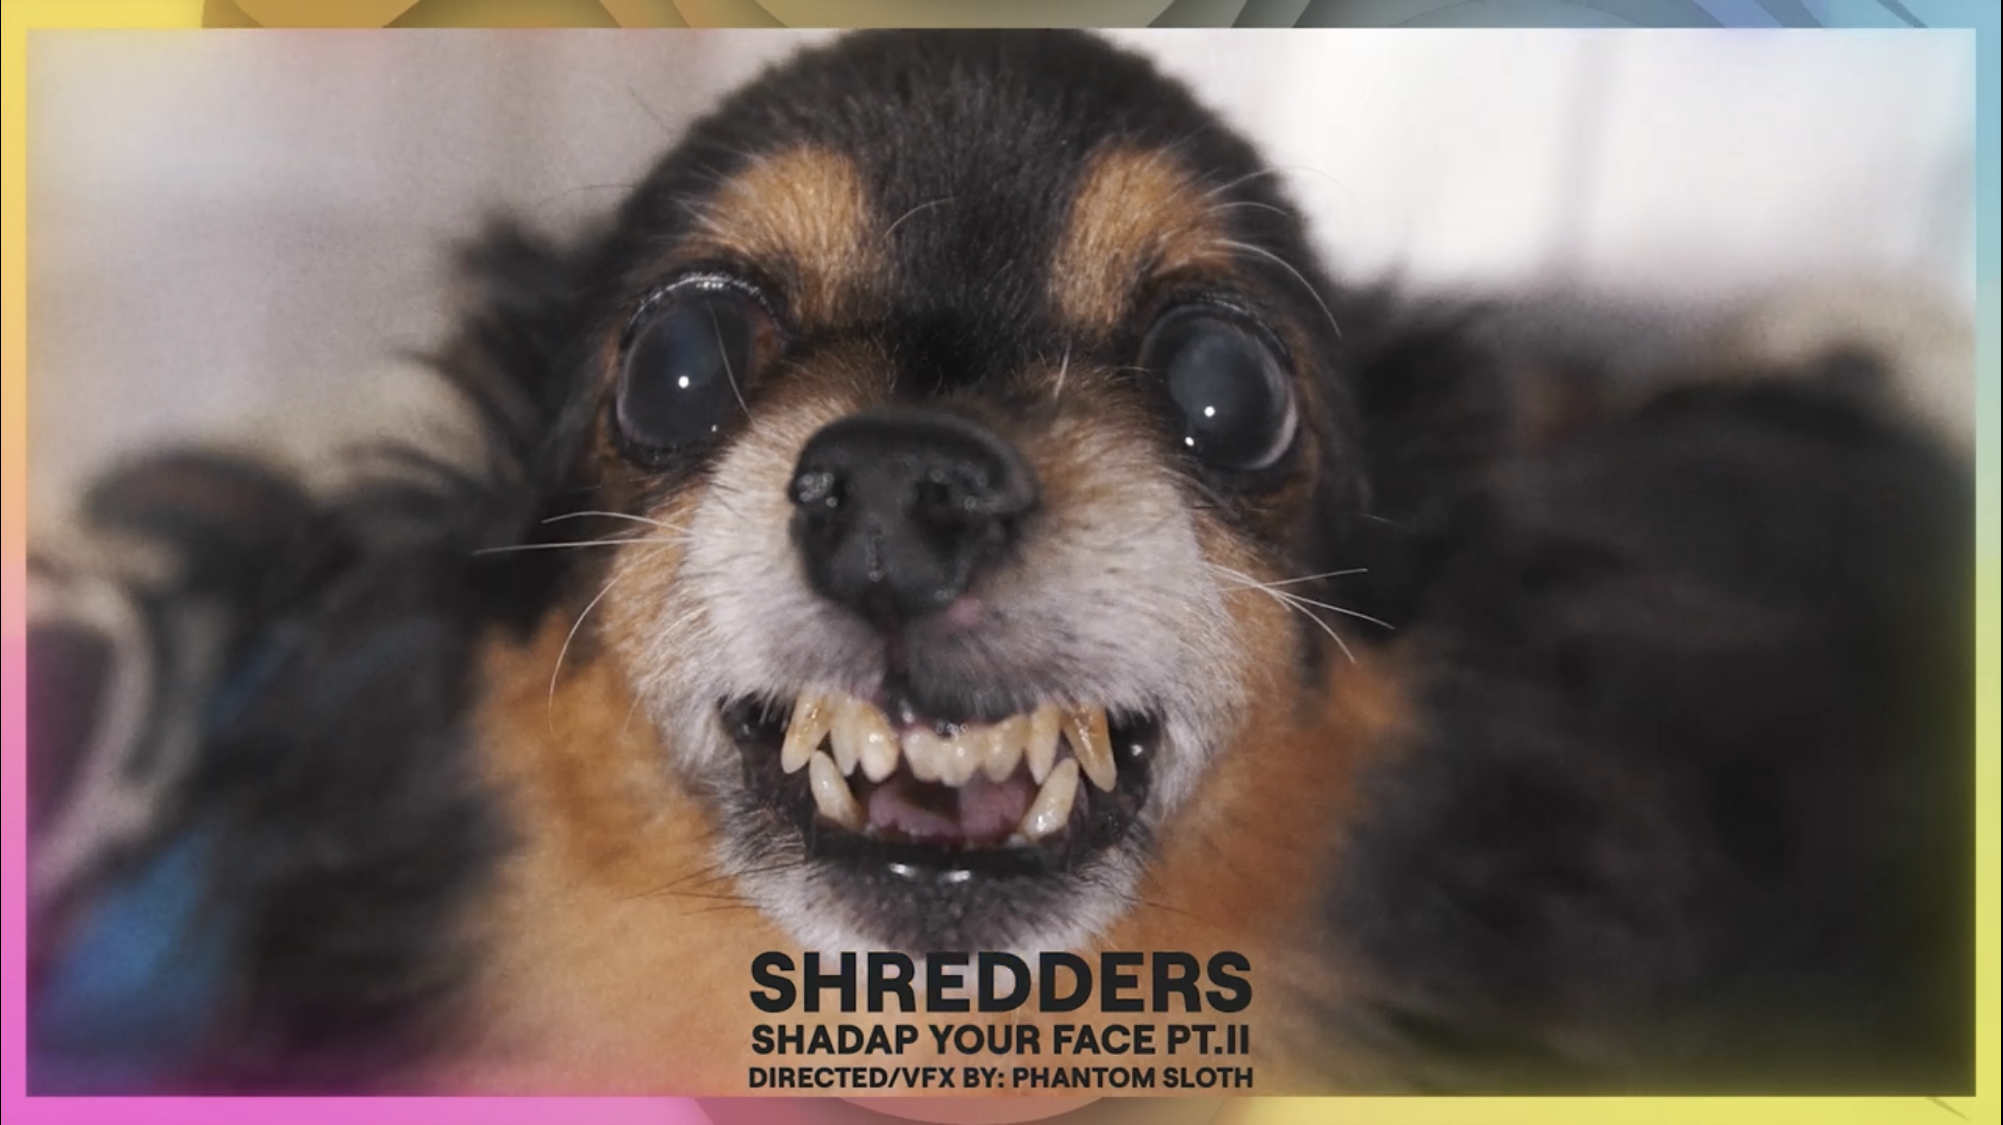 SHREDDERS - Shadap You Face Pt. II (official video)